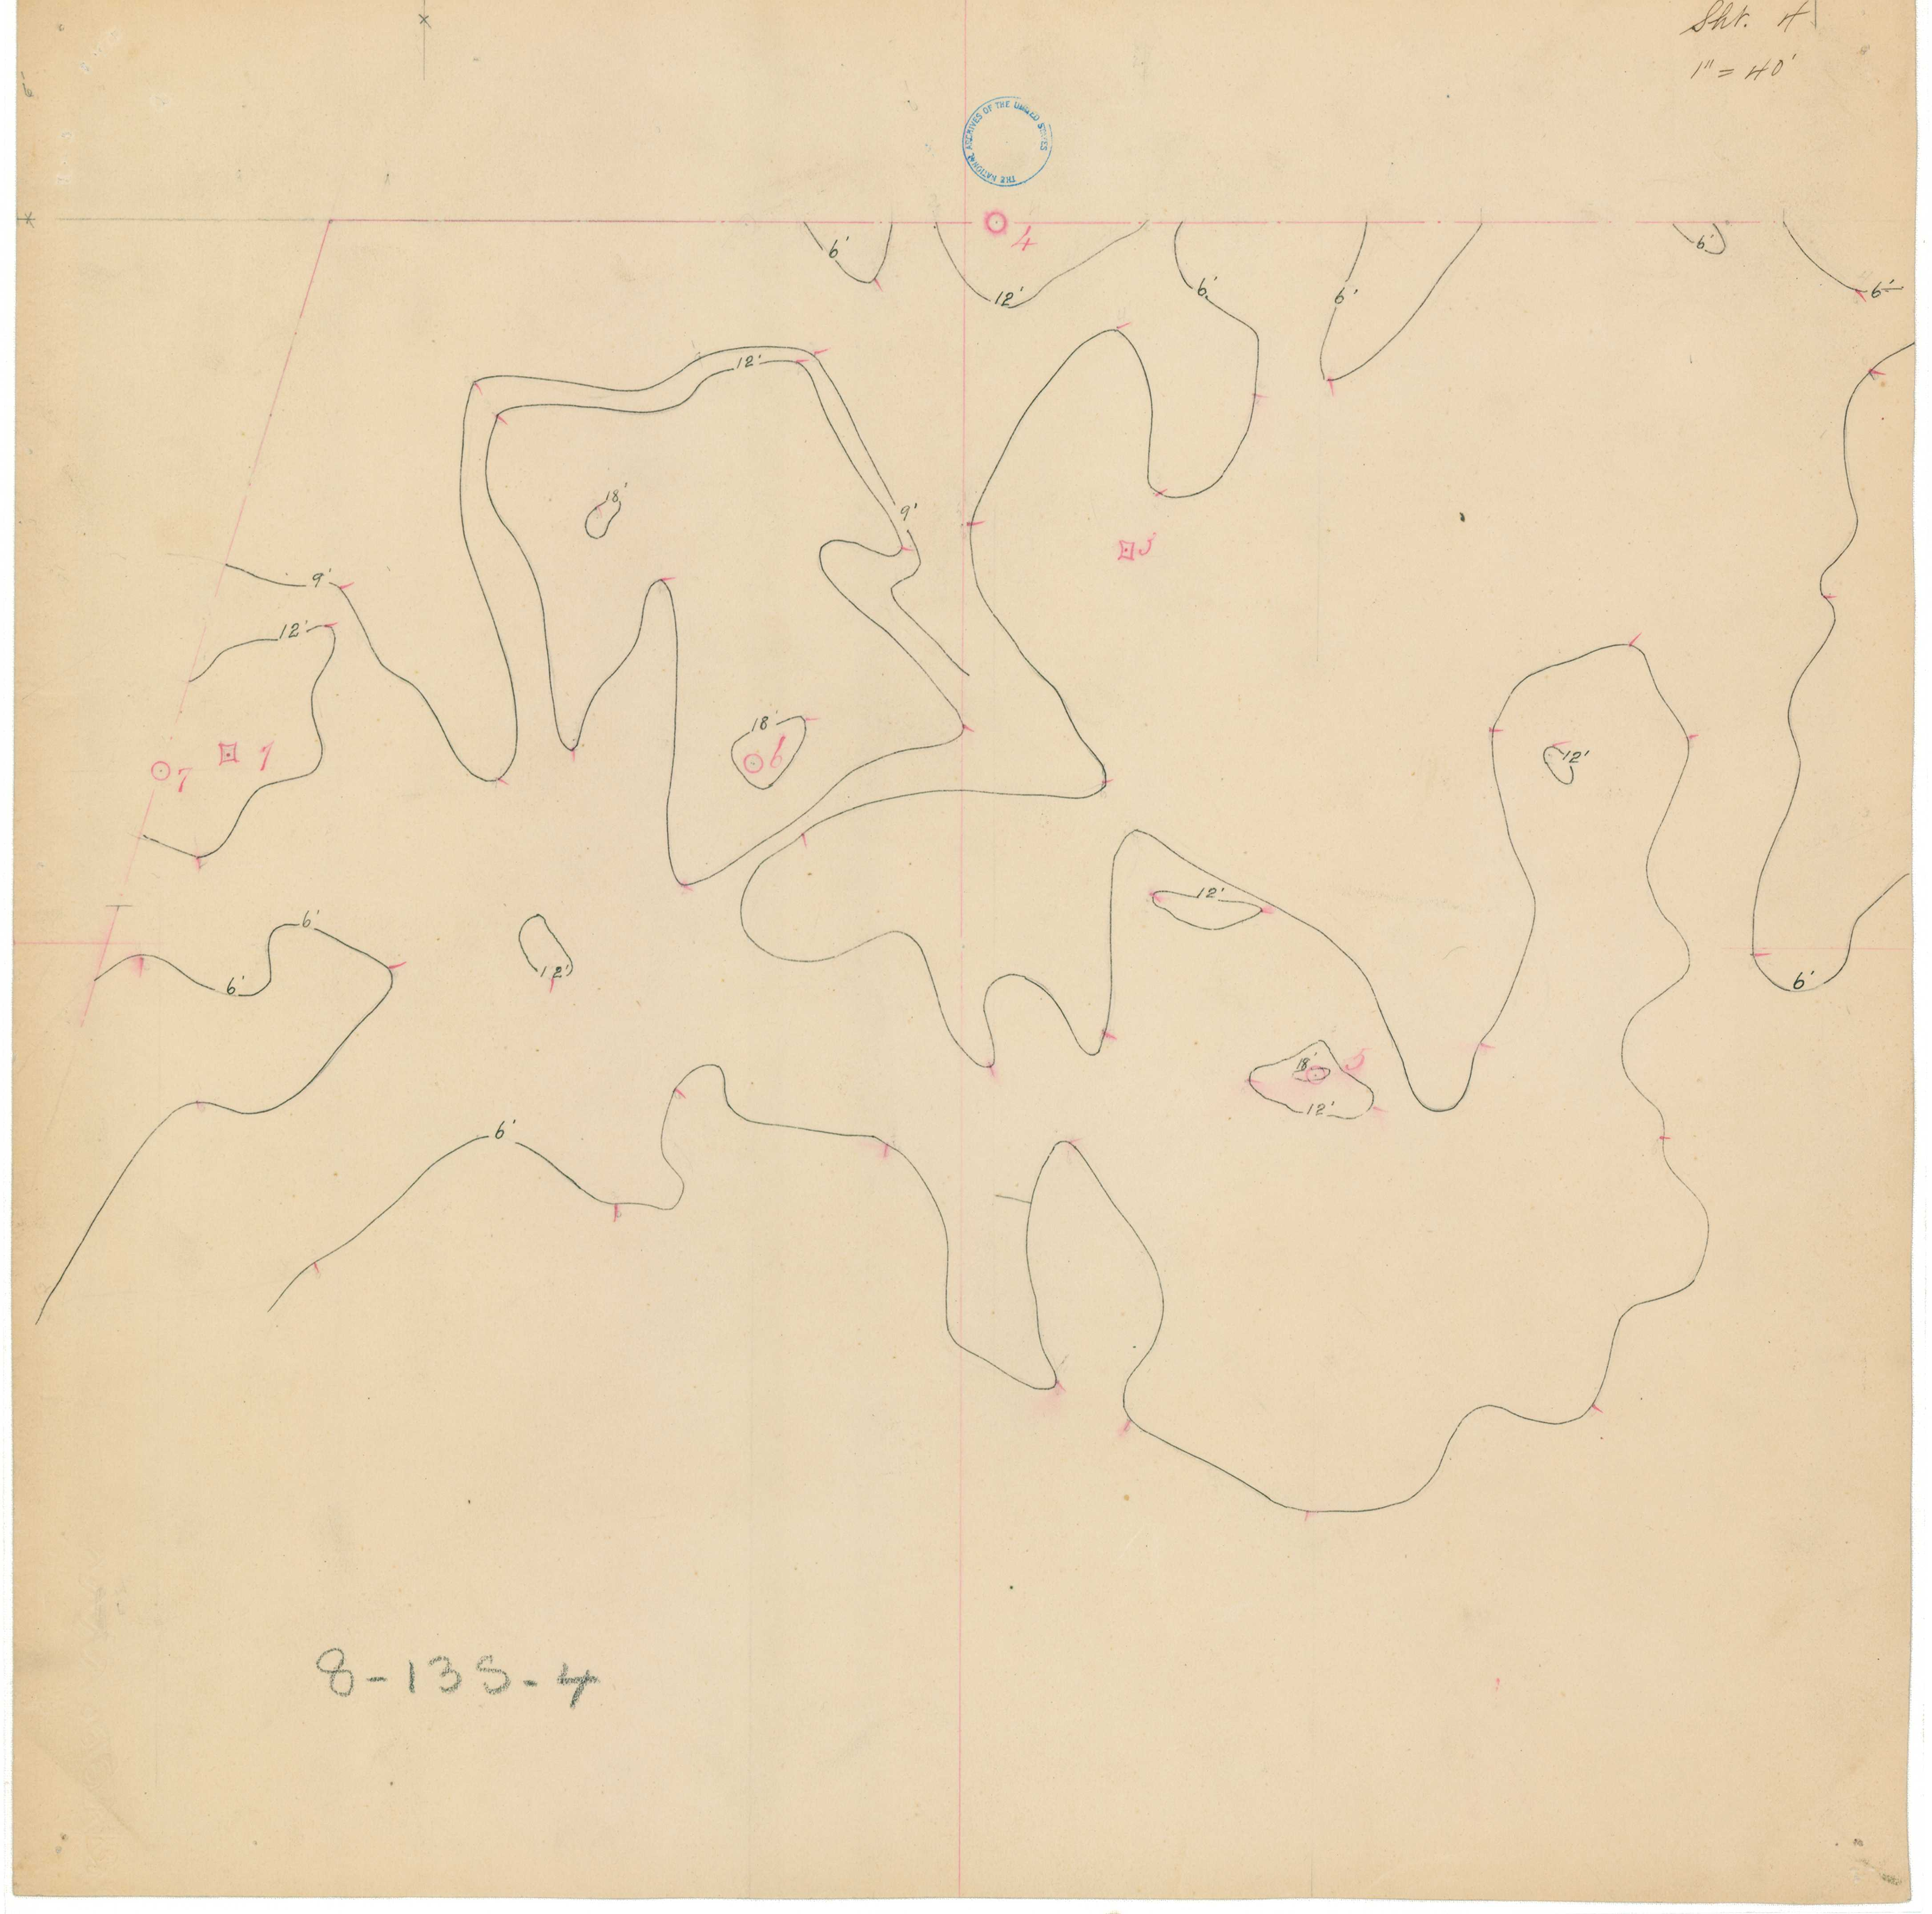 Topographical Survey Map, Light Station 4